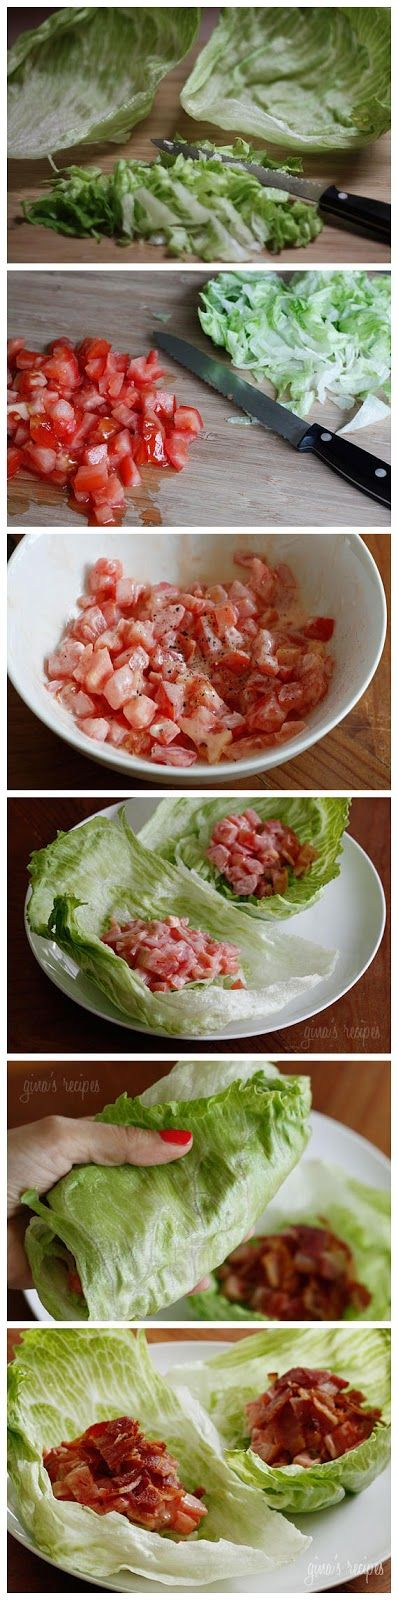 BLT Lettuce Wraps | Favorite Food Bloggers! | Pinterest